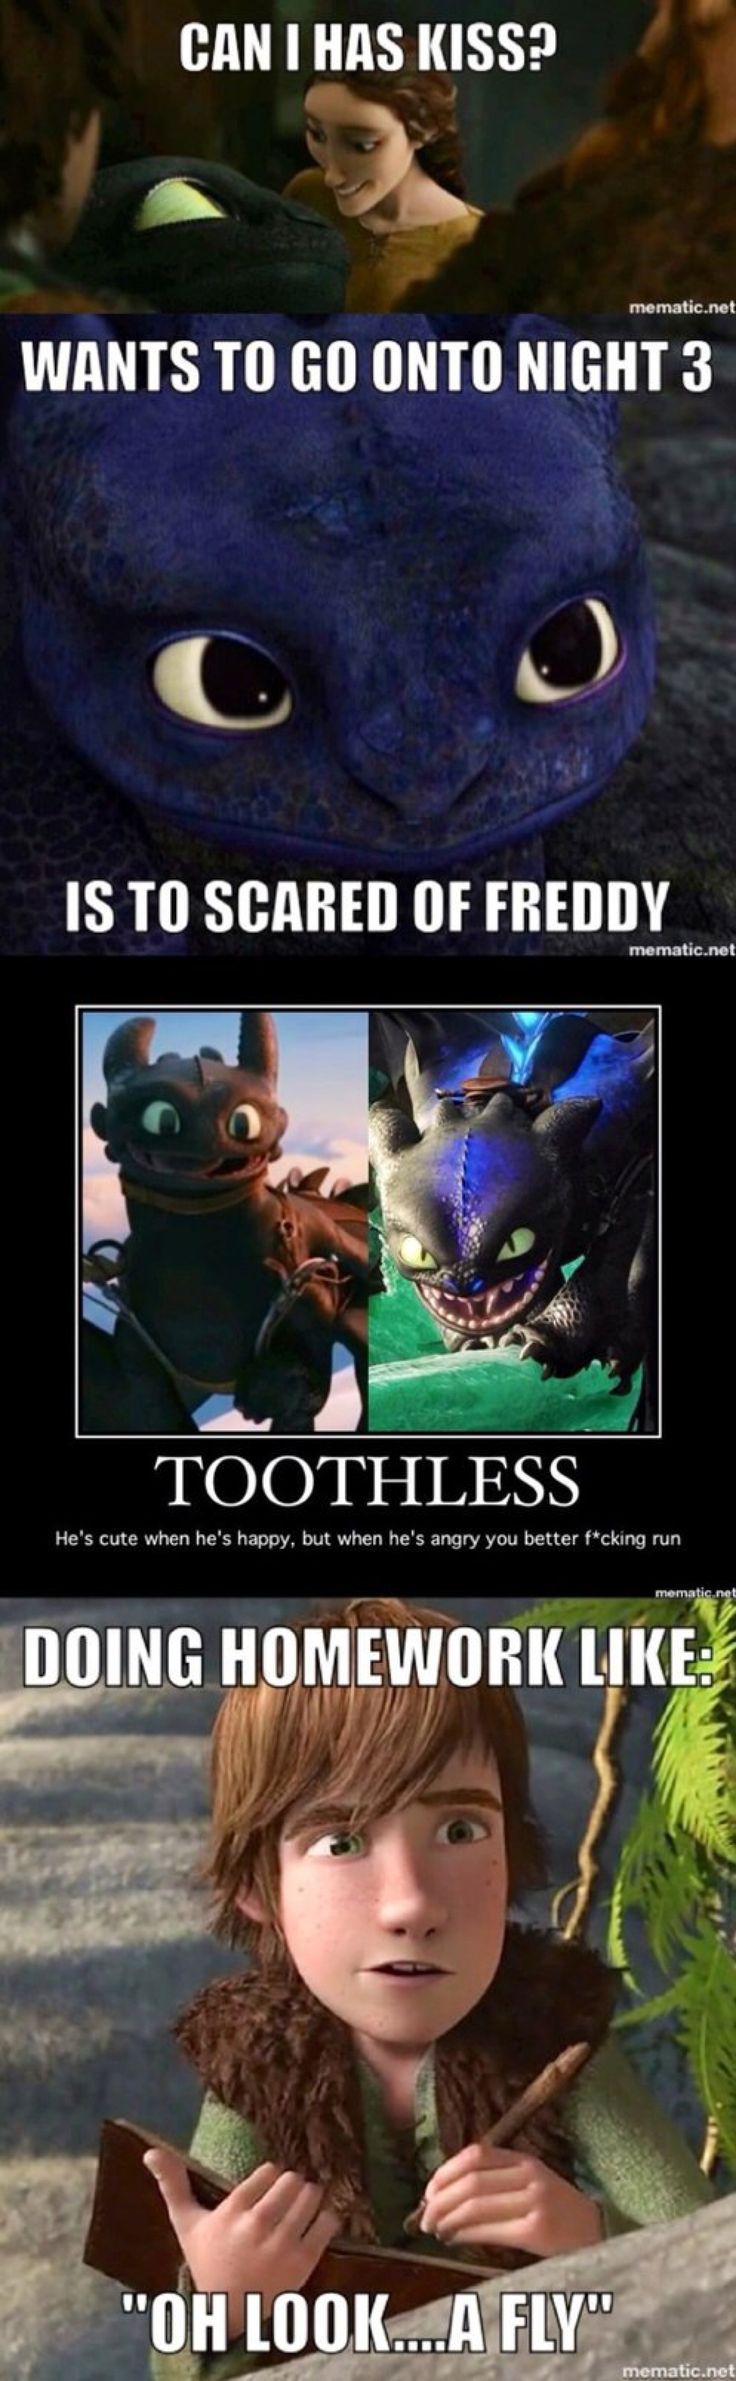 Httyd meme collection 8 by nightfuryfire2 on @DeviantArt